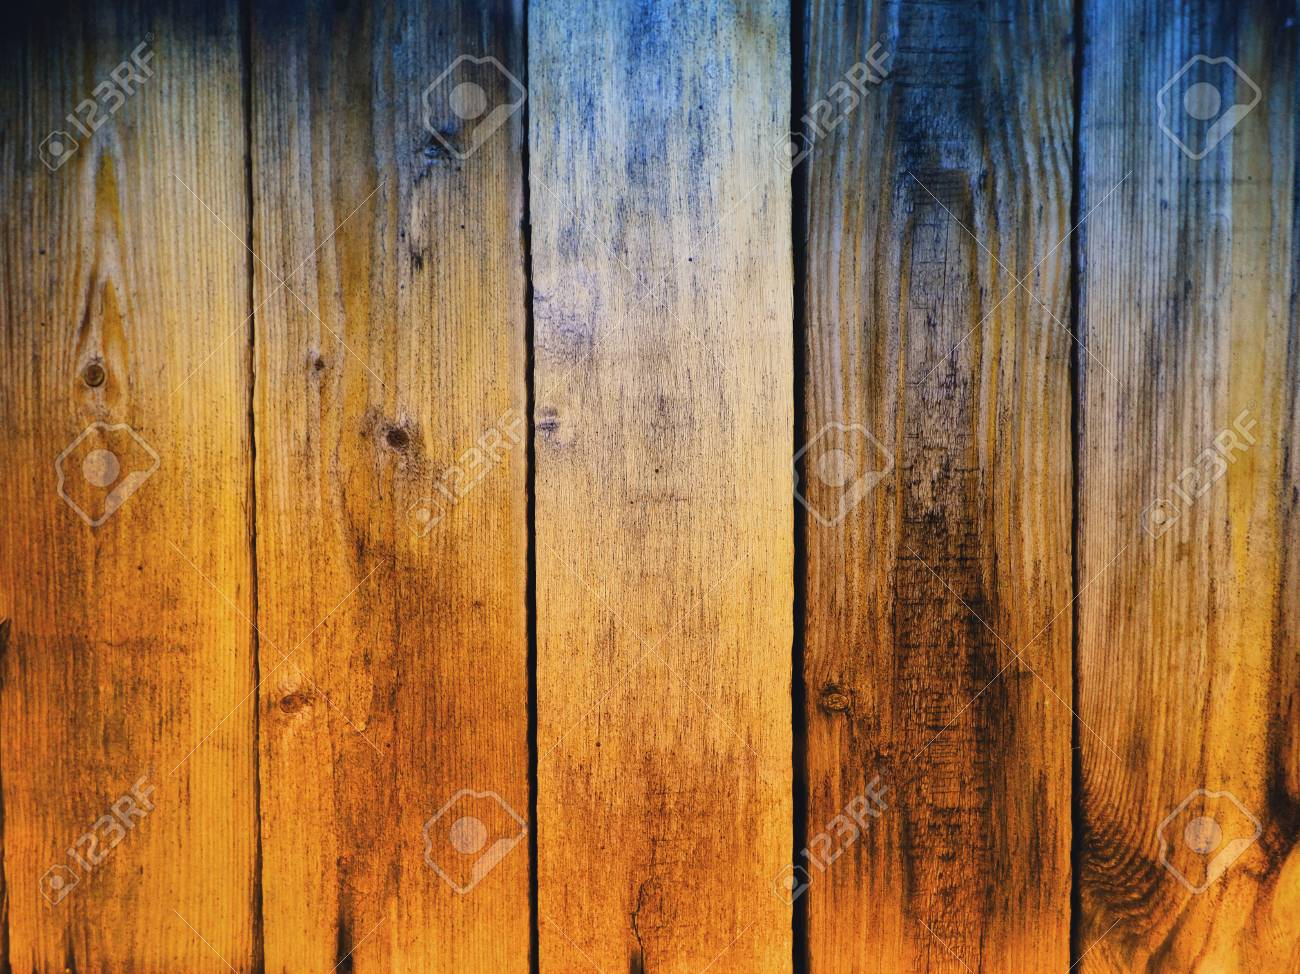 Wood Texture Background Nature Wallpaper Vintage Retro